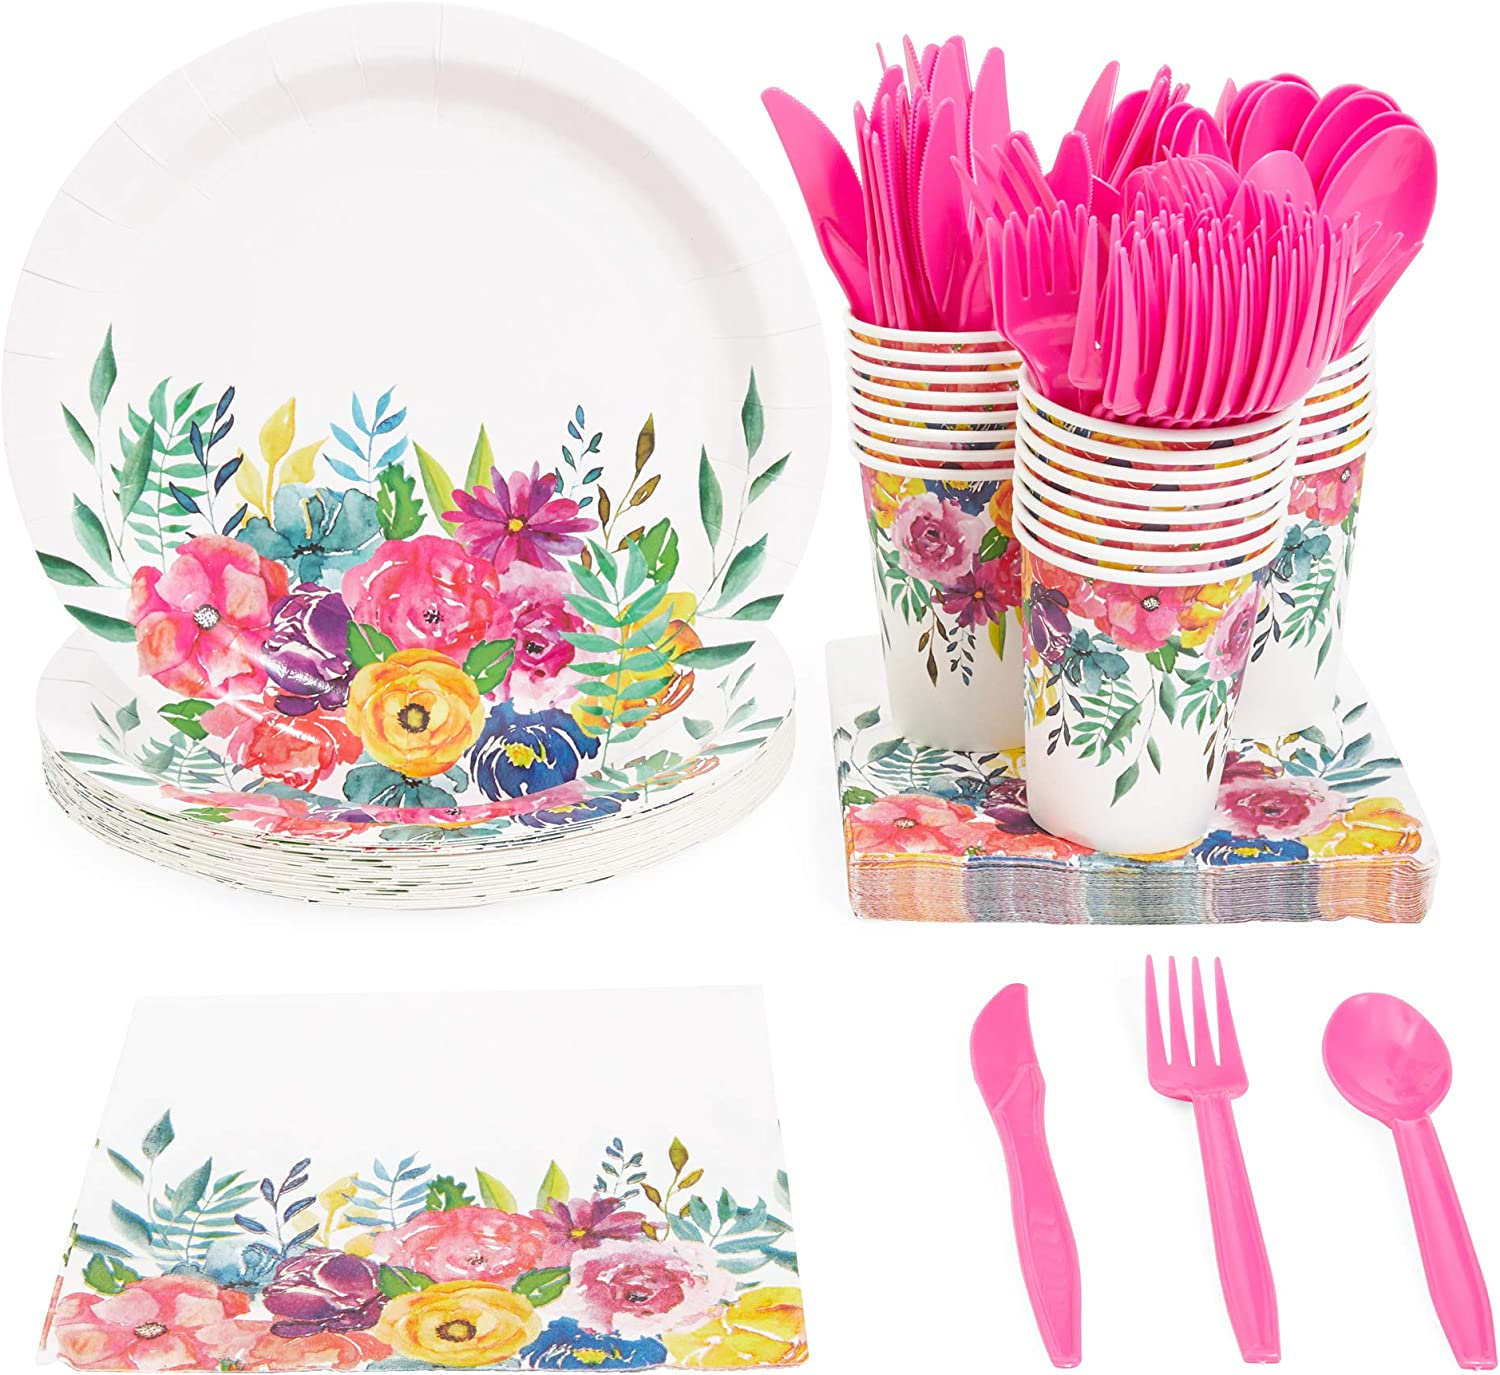 Colorful Floral Party Bundle, Includes Plates, Napkins, Cups, and Cutlery (24 Guests,144 Pieces)